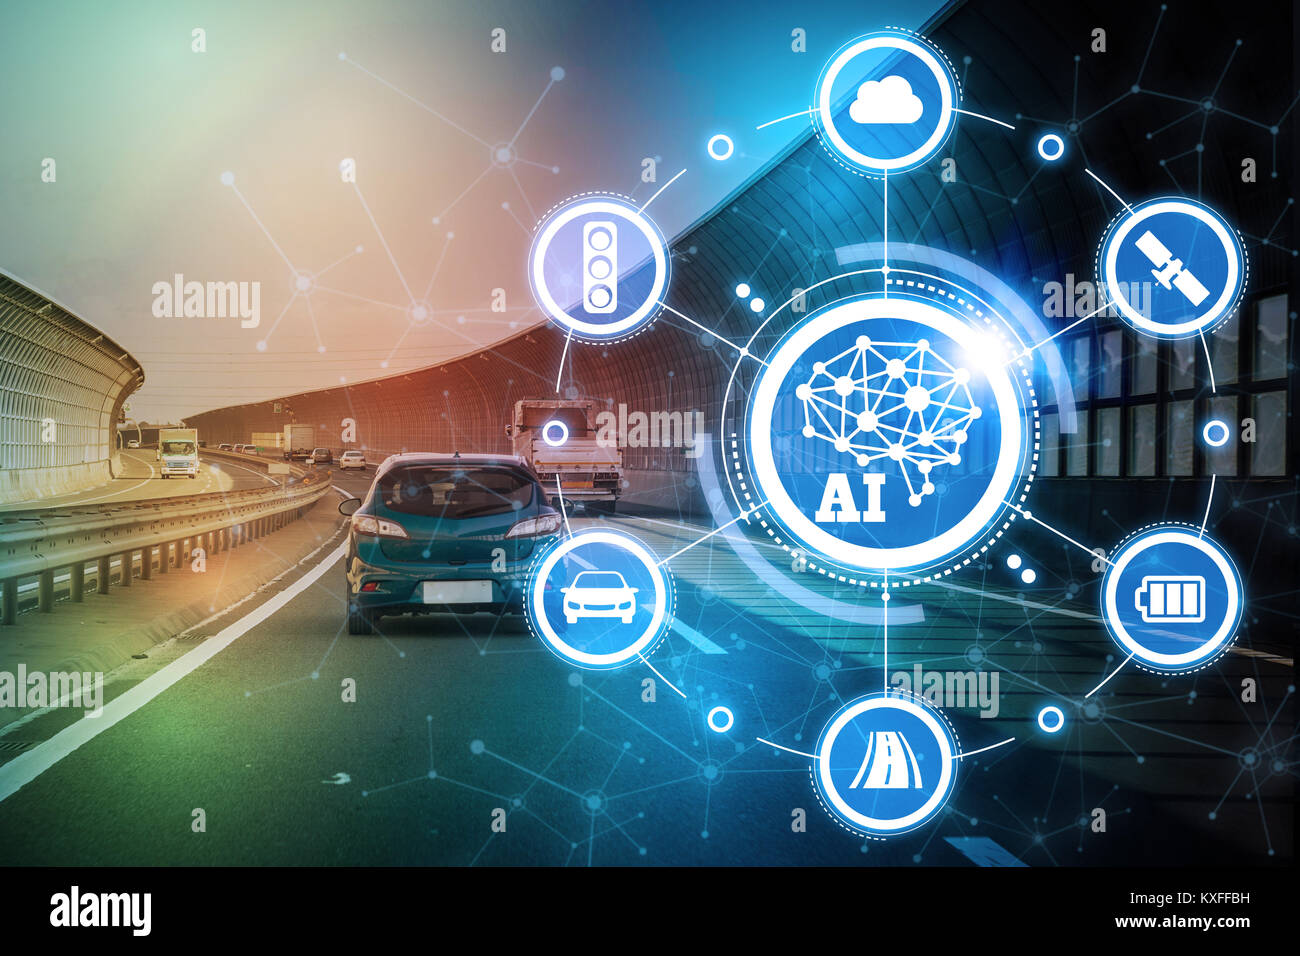 AI(Artificial Intelligence and automotive technology. Autonomous car. - Stock Image